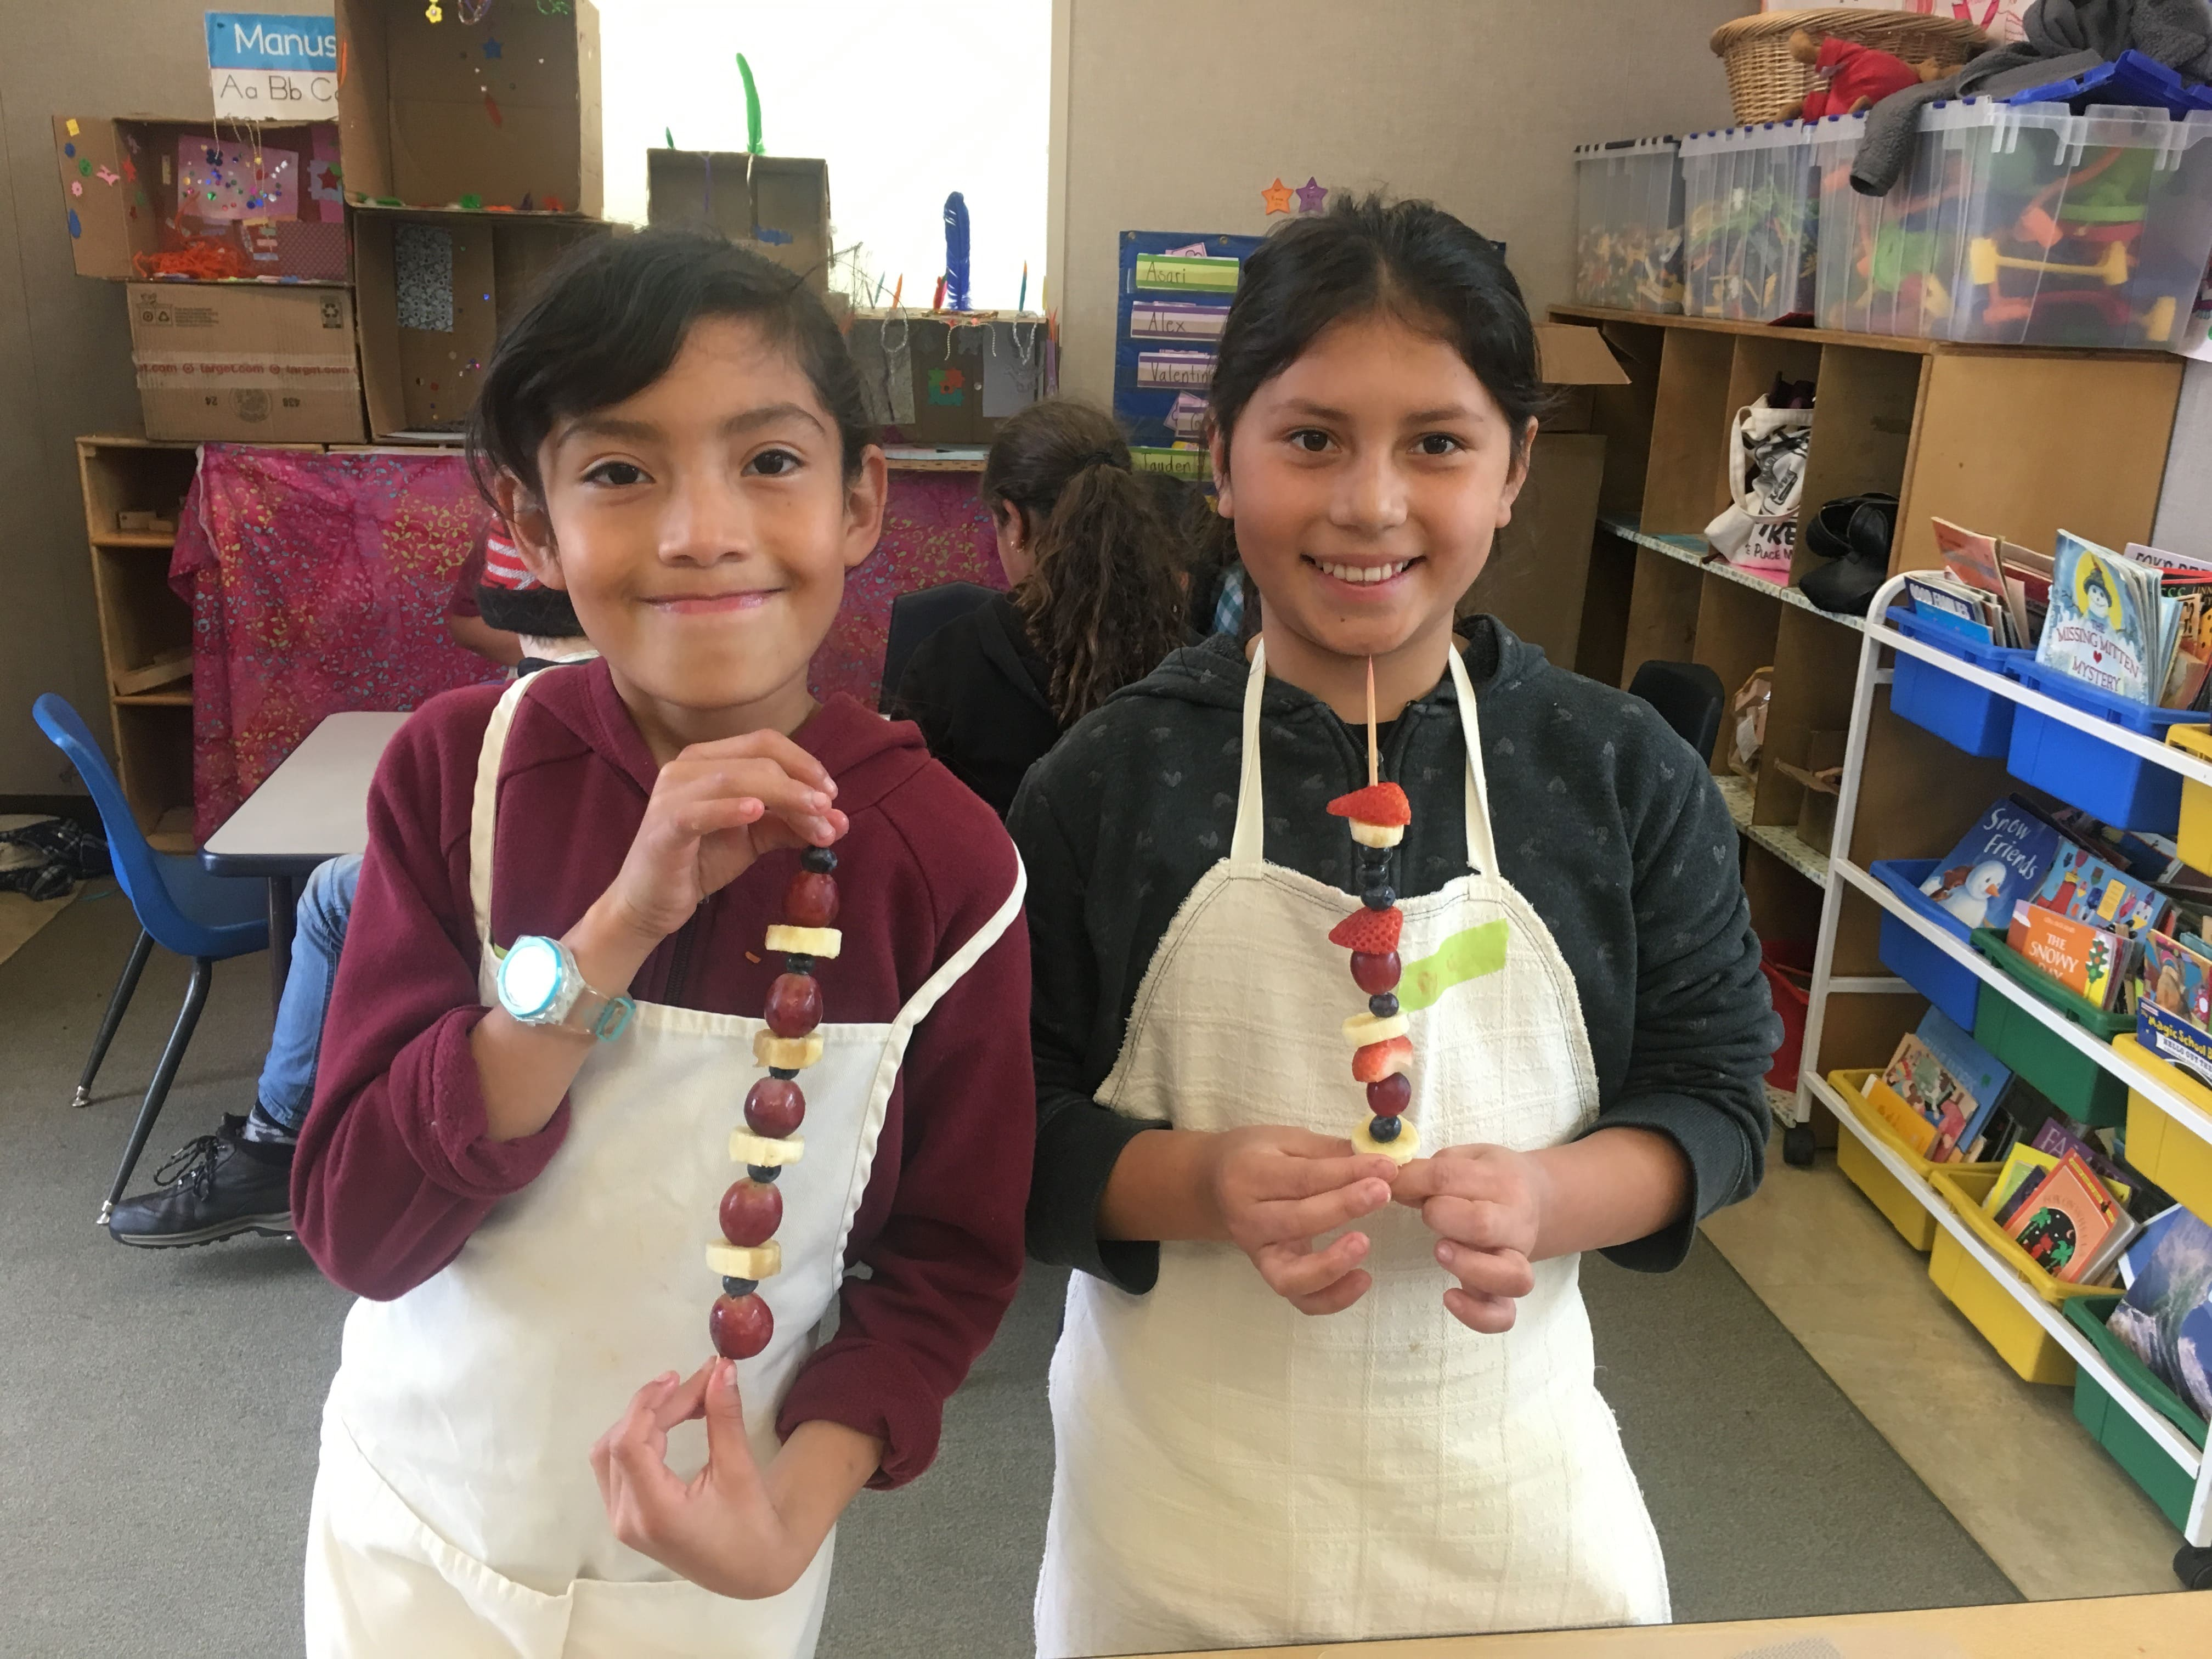 2 students holding fruit kabobs